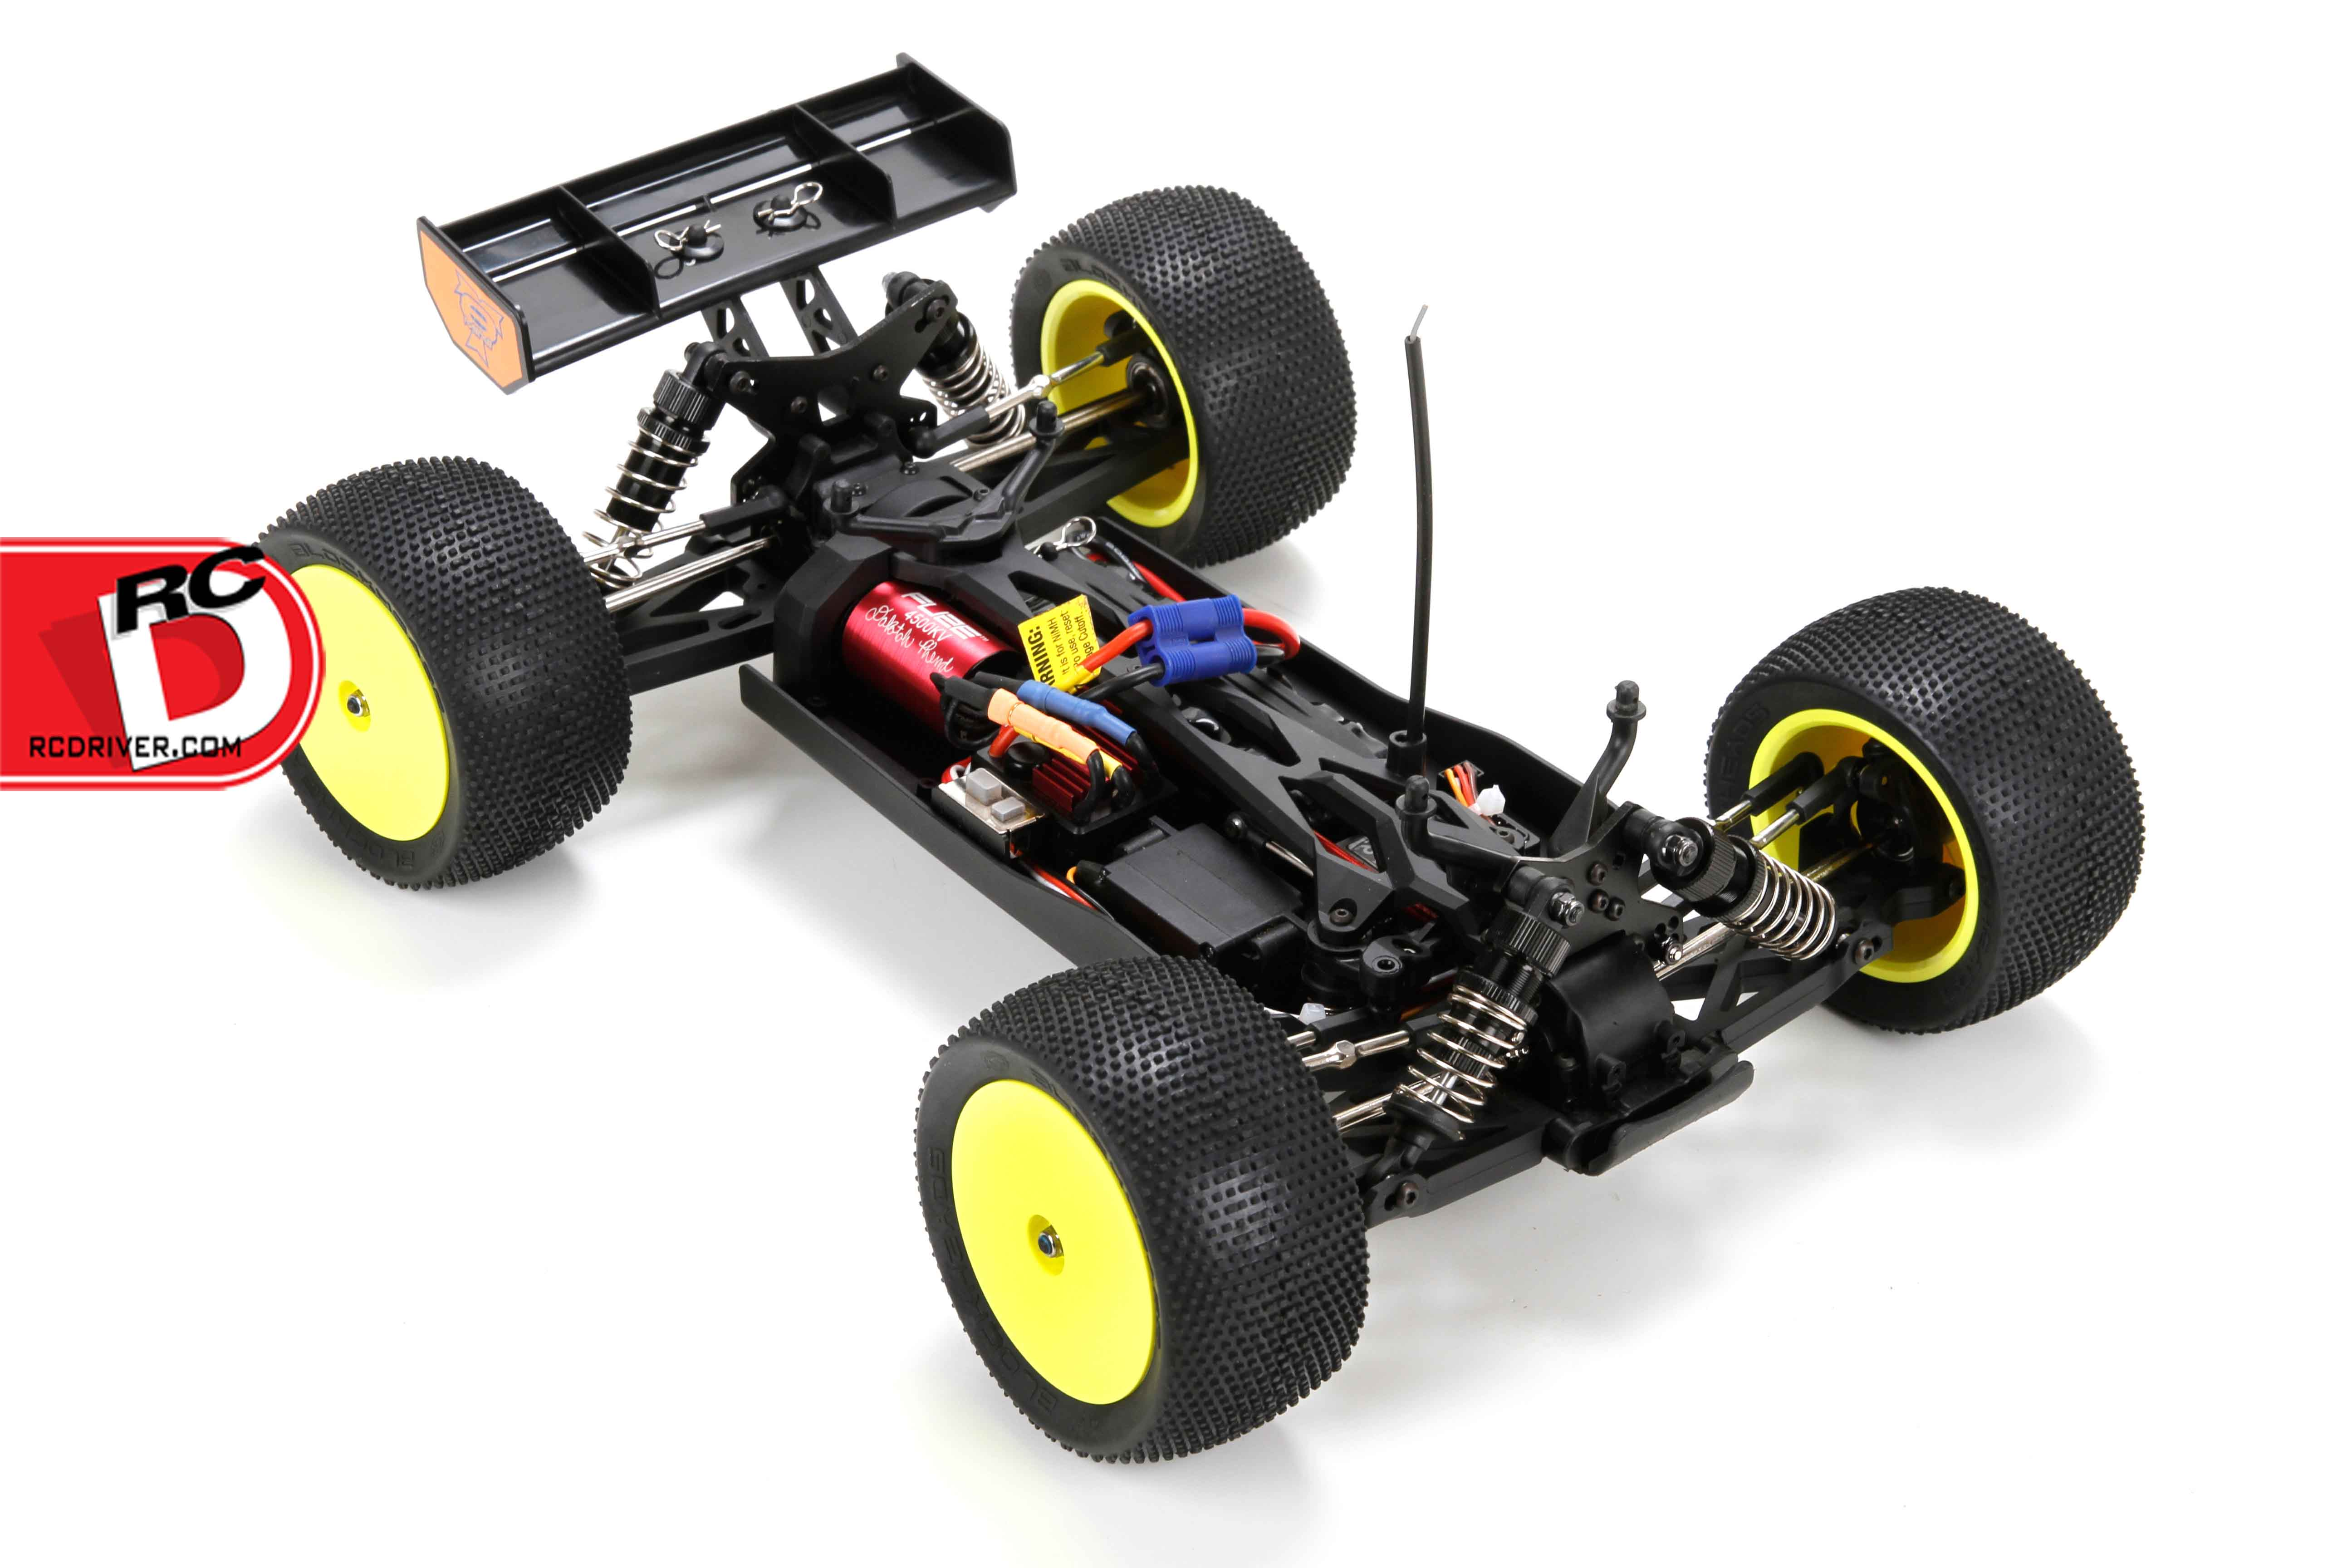 rc brushless truggy with Maifield And Phend Editions Of The Mini 8ight T on TraxxasRallyTQi24GHz1104WDBrushlessRTRElectricRCCar furthermore Index besides Mega furthermore 32480852256 together with Blx.